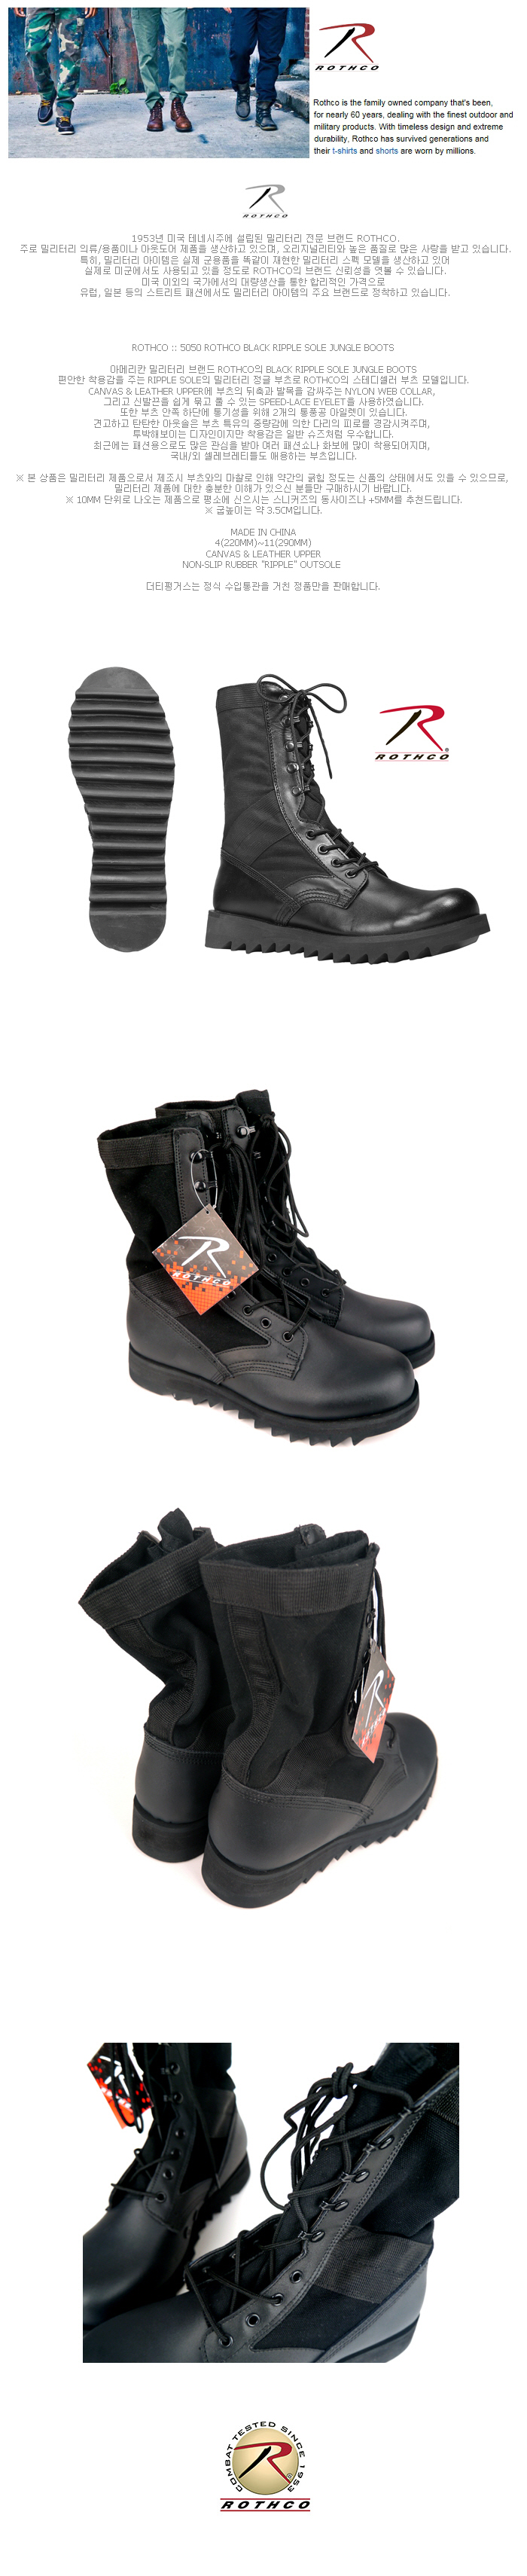 BLACK RIPPLE SOLE JUNGLE BOOTS